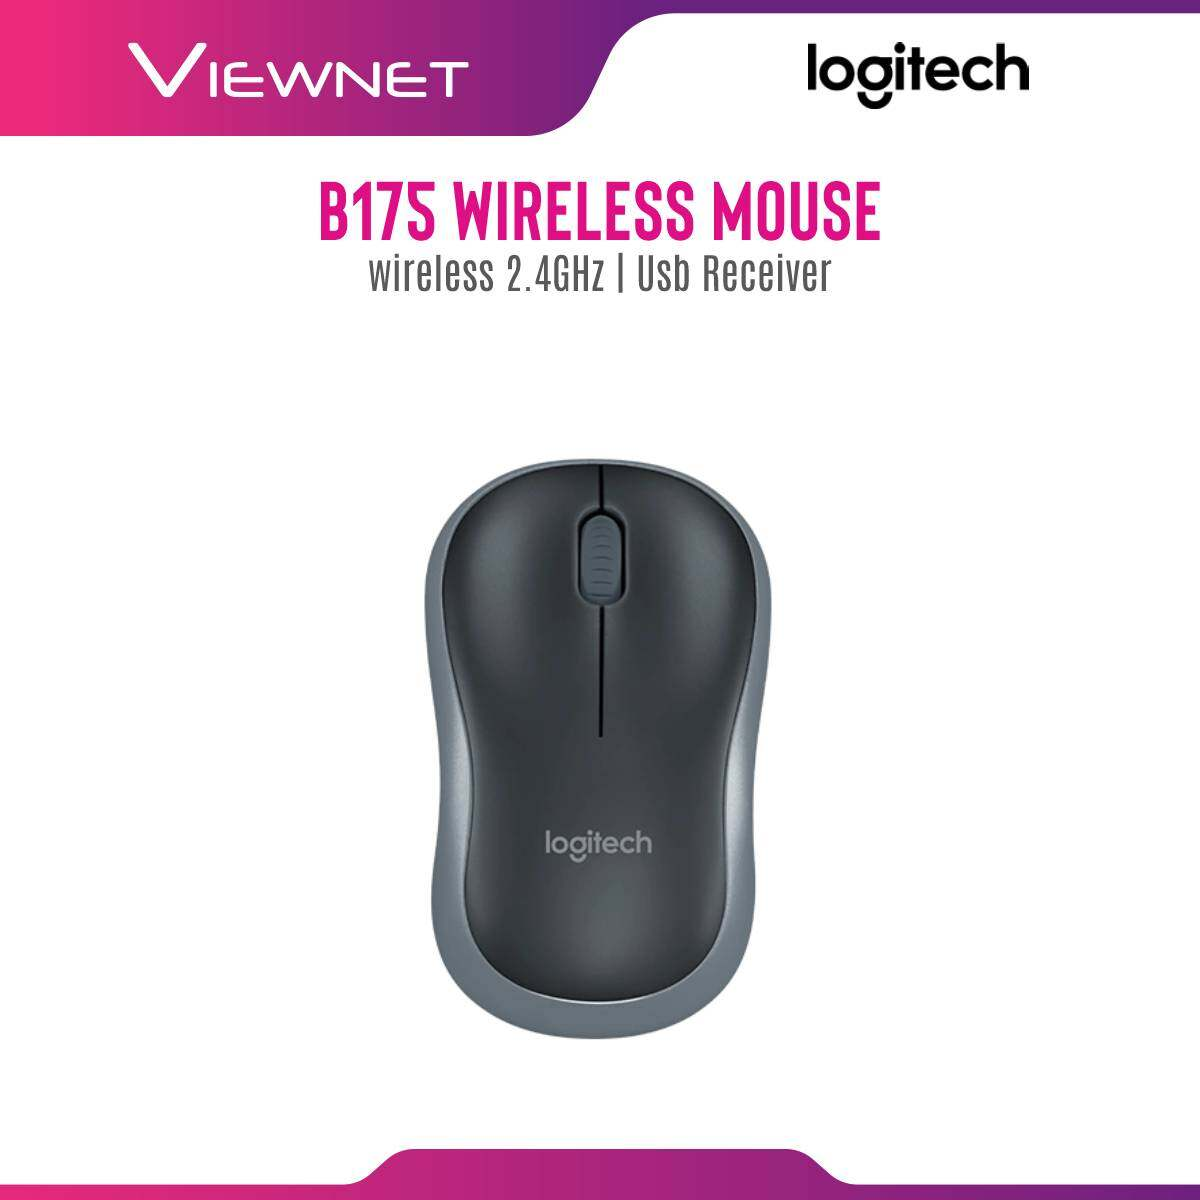 Logitech Wireless Mouse B175 with 2.4GHz Wireless Connection, Up To 1 Year Battery Life, Nano USB Receiver